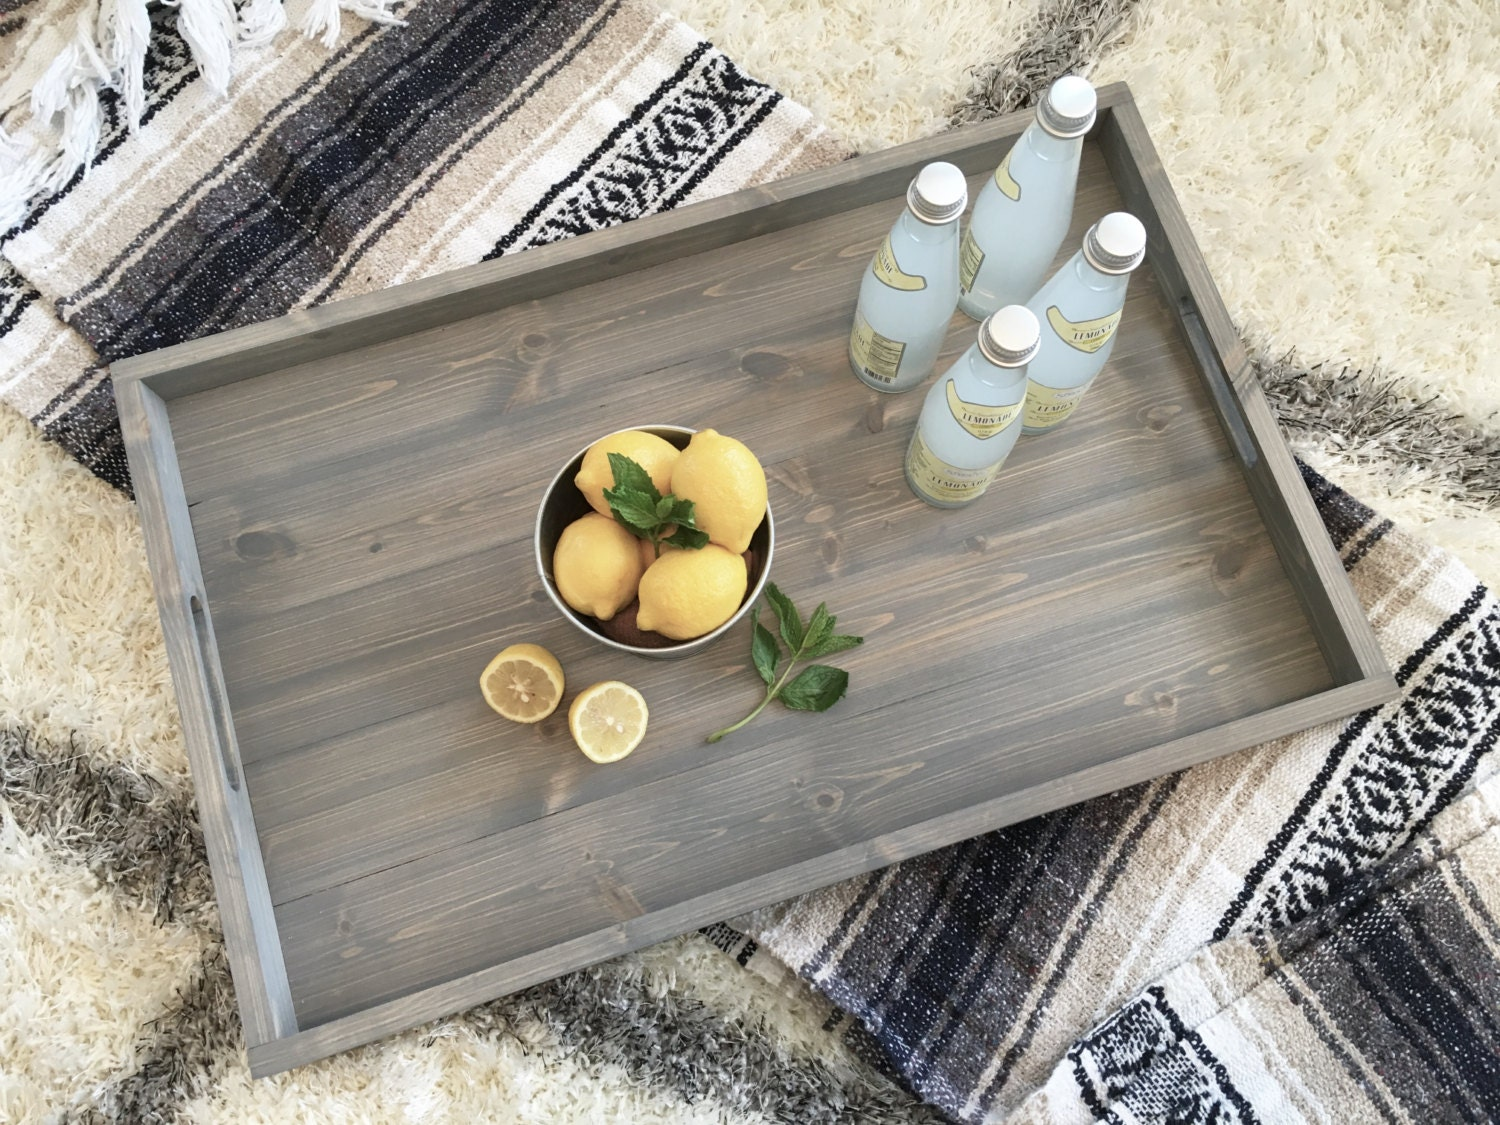 Rustic wooden ottoman tray ottoman tray wooden tray rustic rustic wooden ottoman tray ottoman tray wooden tray rustic decor farmhouse decor rustic home decor serving tray coffee table tray geotapseo Image collections